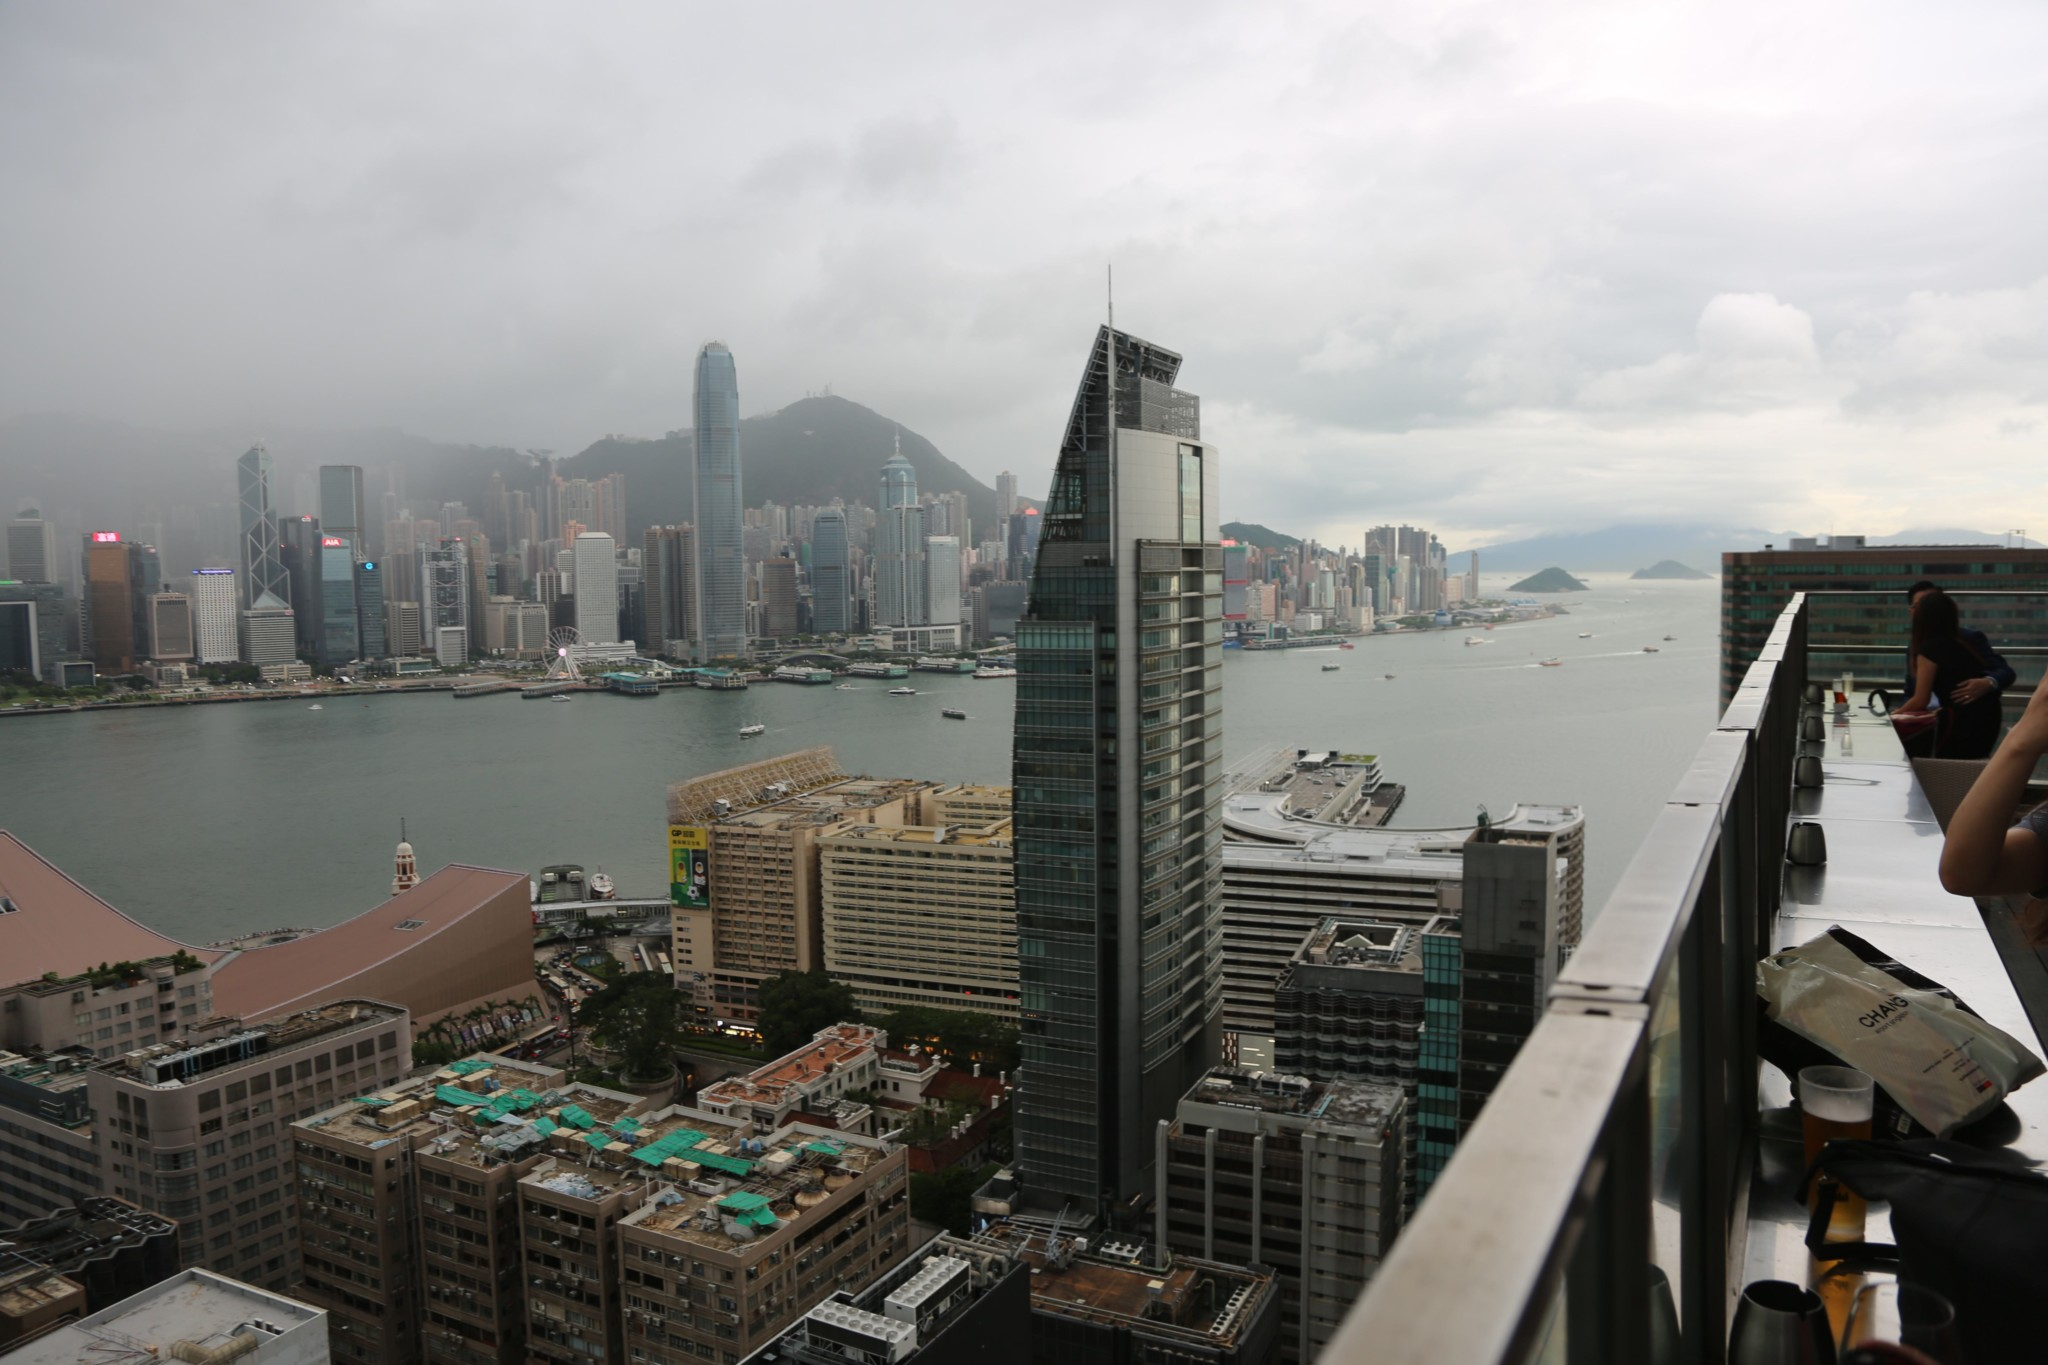 Hong Kong has been rated the world's least affordable city. Photo Angus Smith